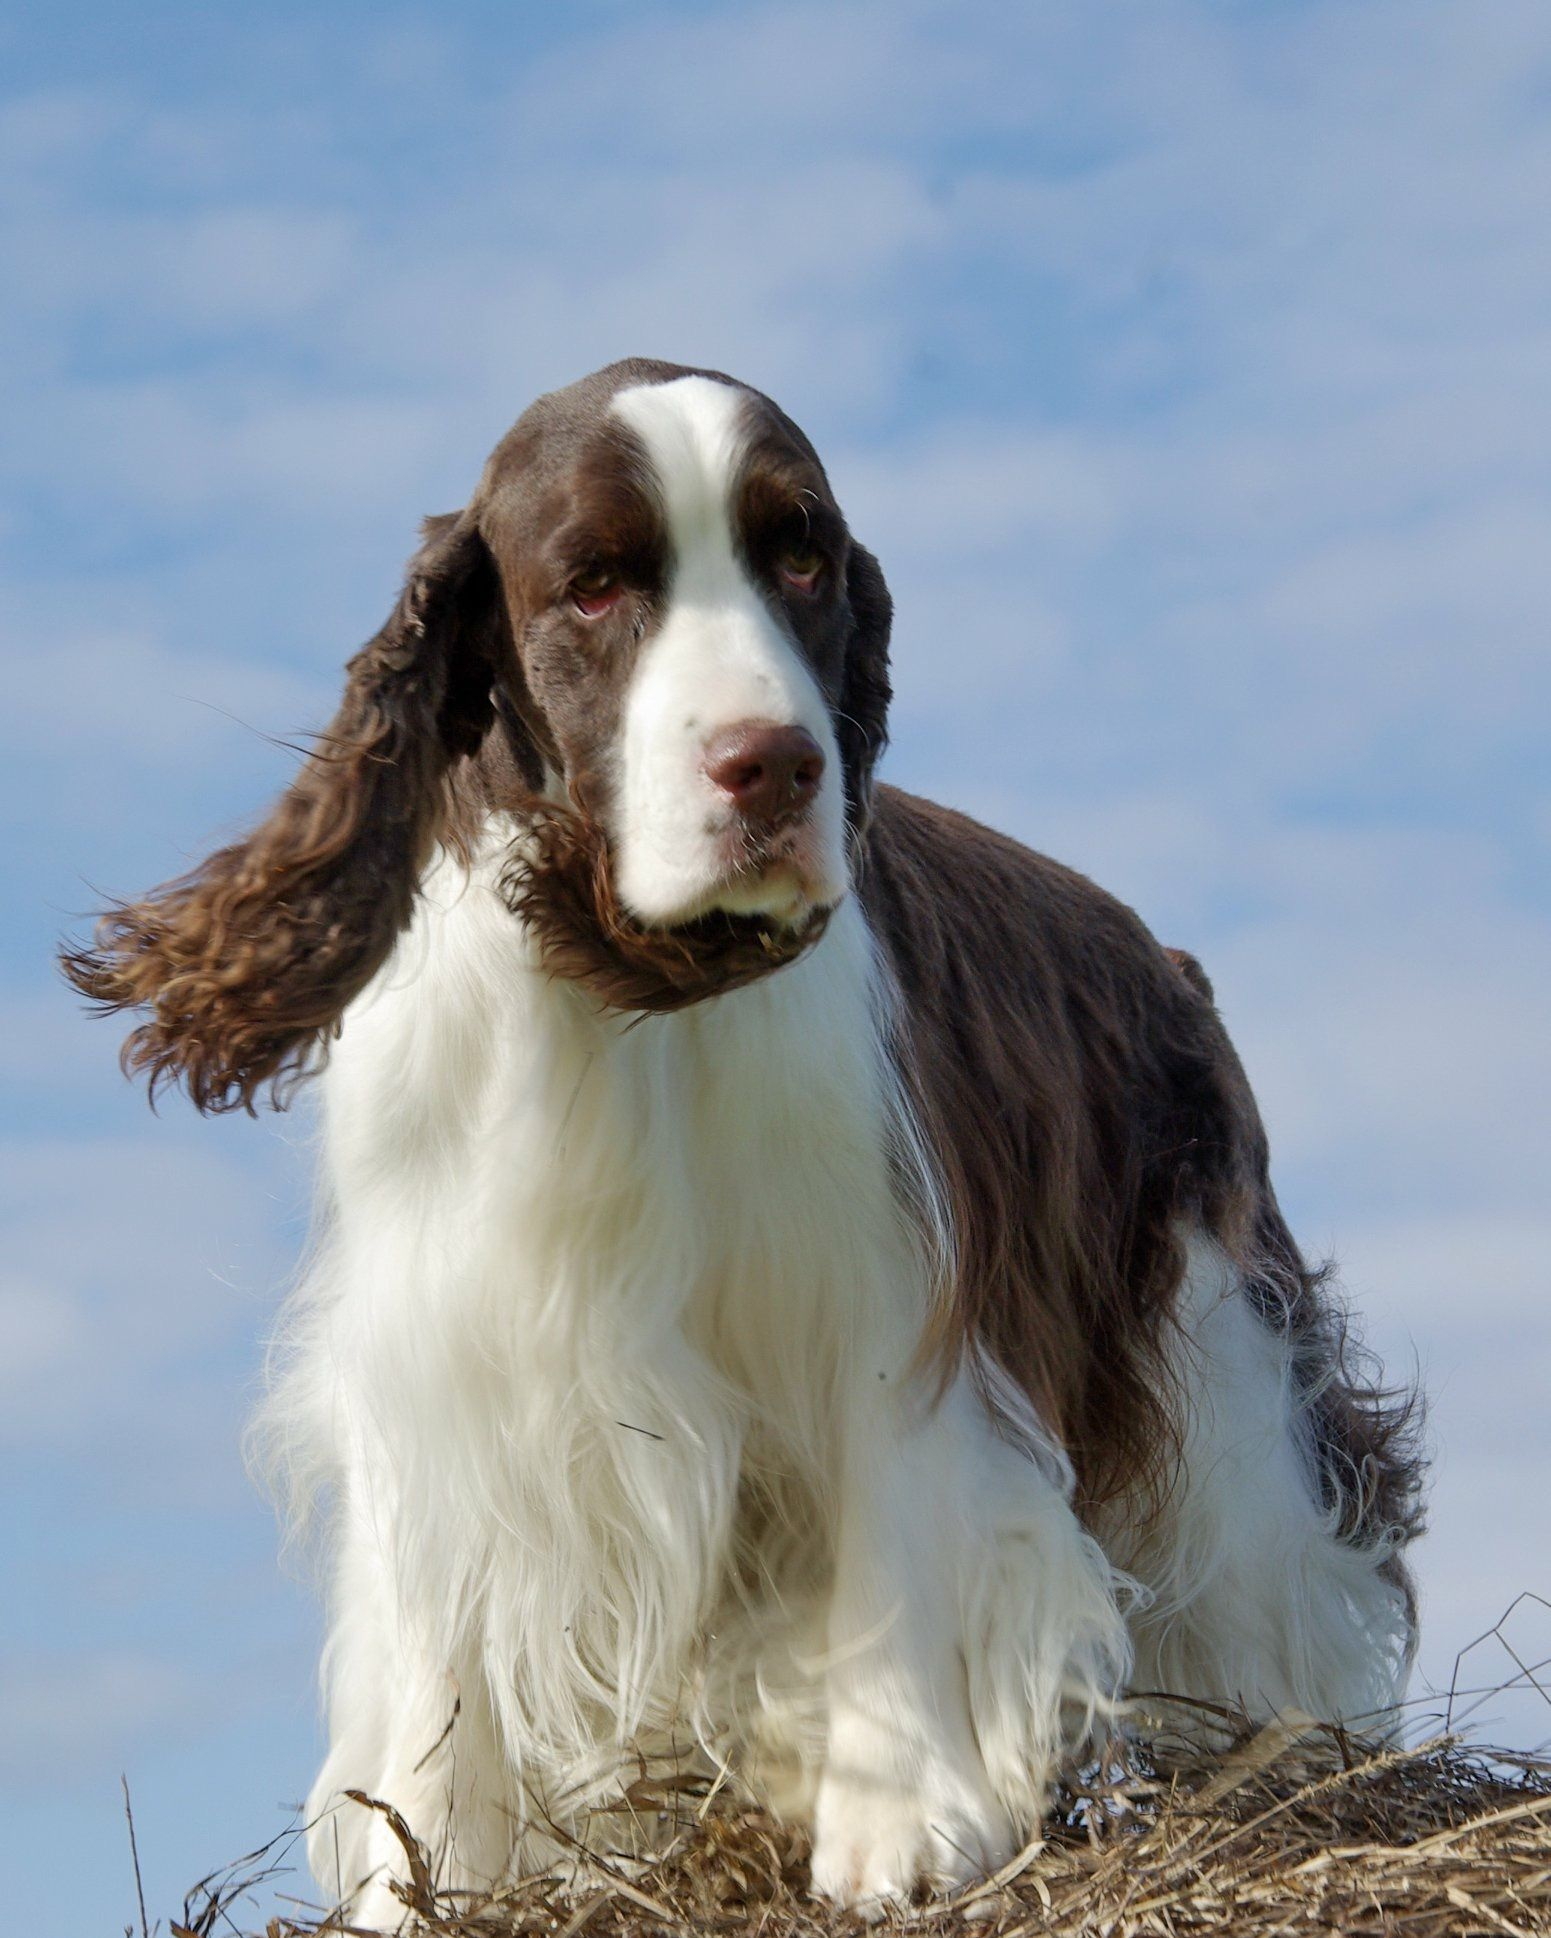 Pin By Chuck Dobson On English Springer Spaniel Akc Dog Shows Springer Spaniel English Springer Spaniel